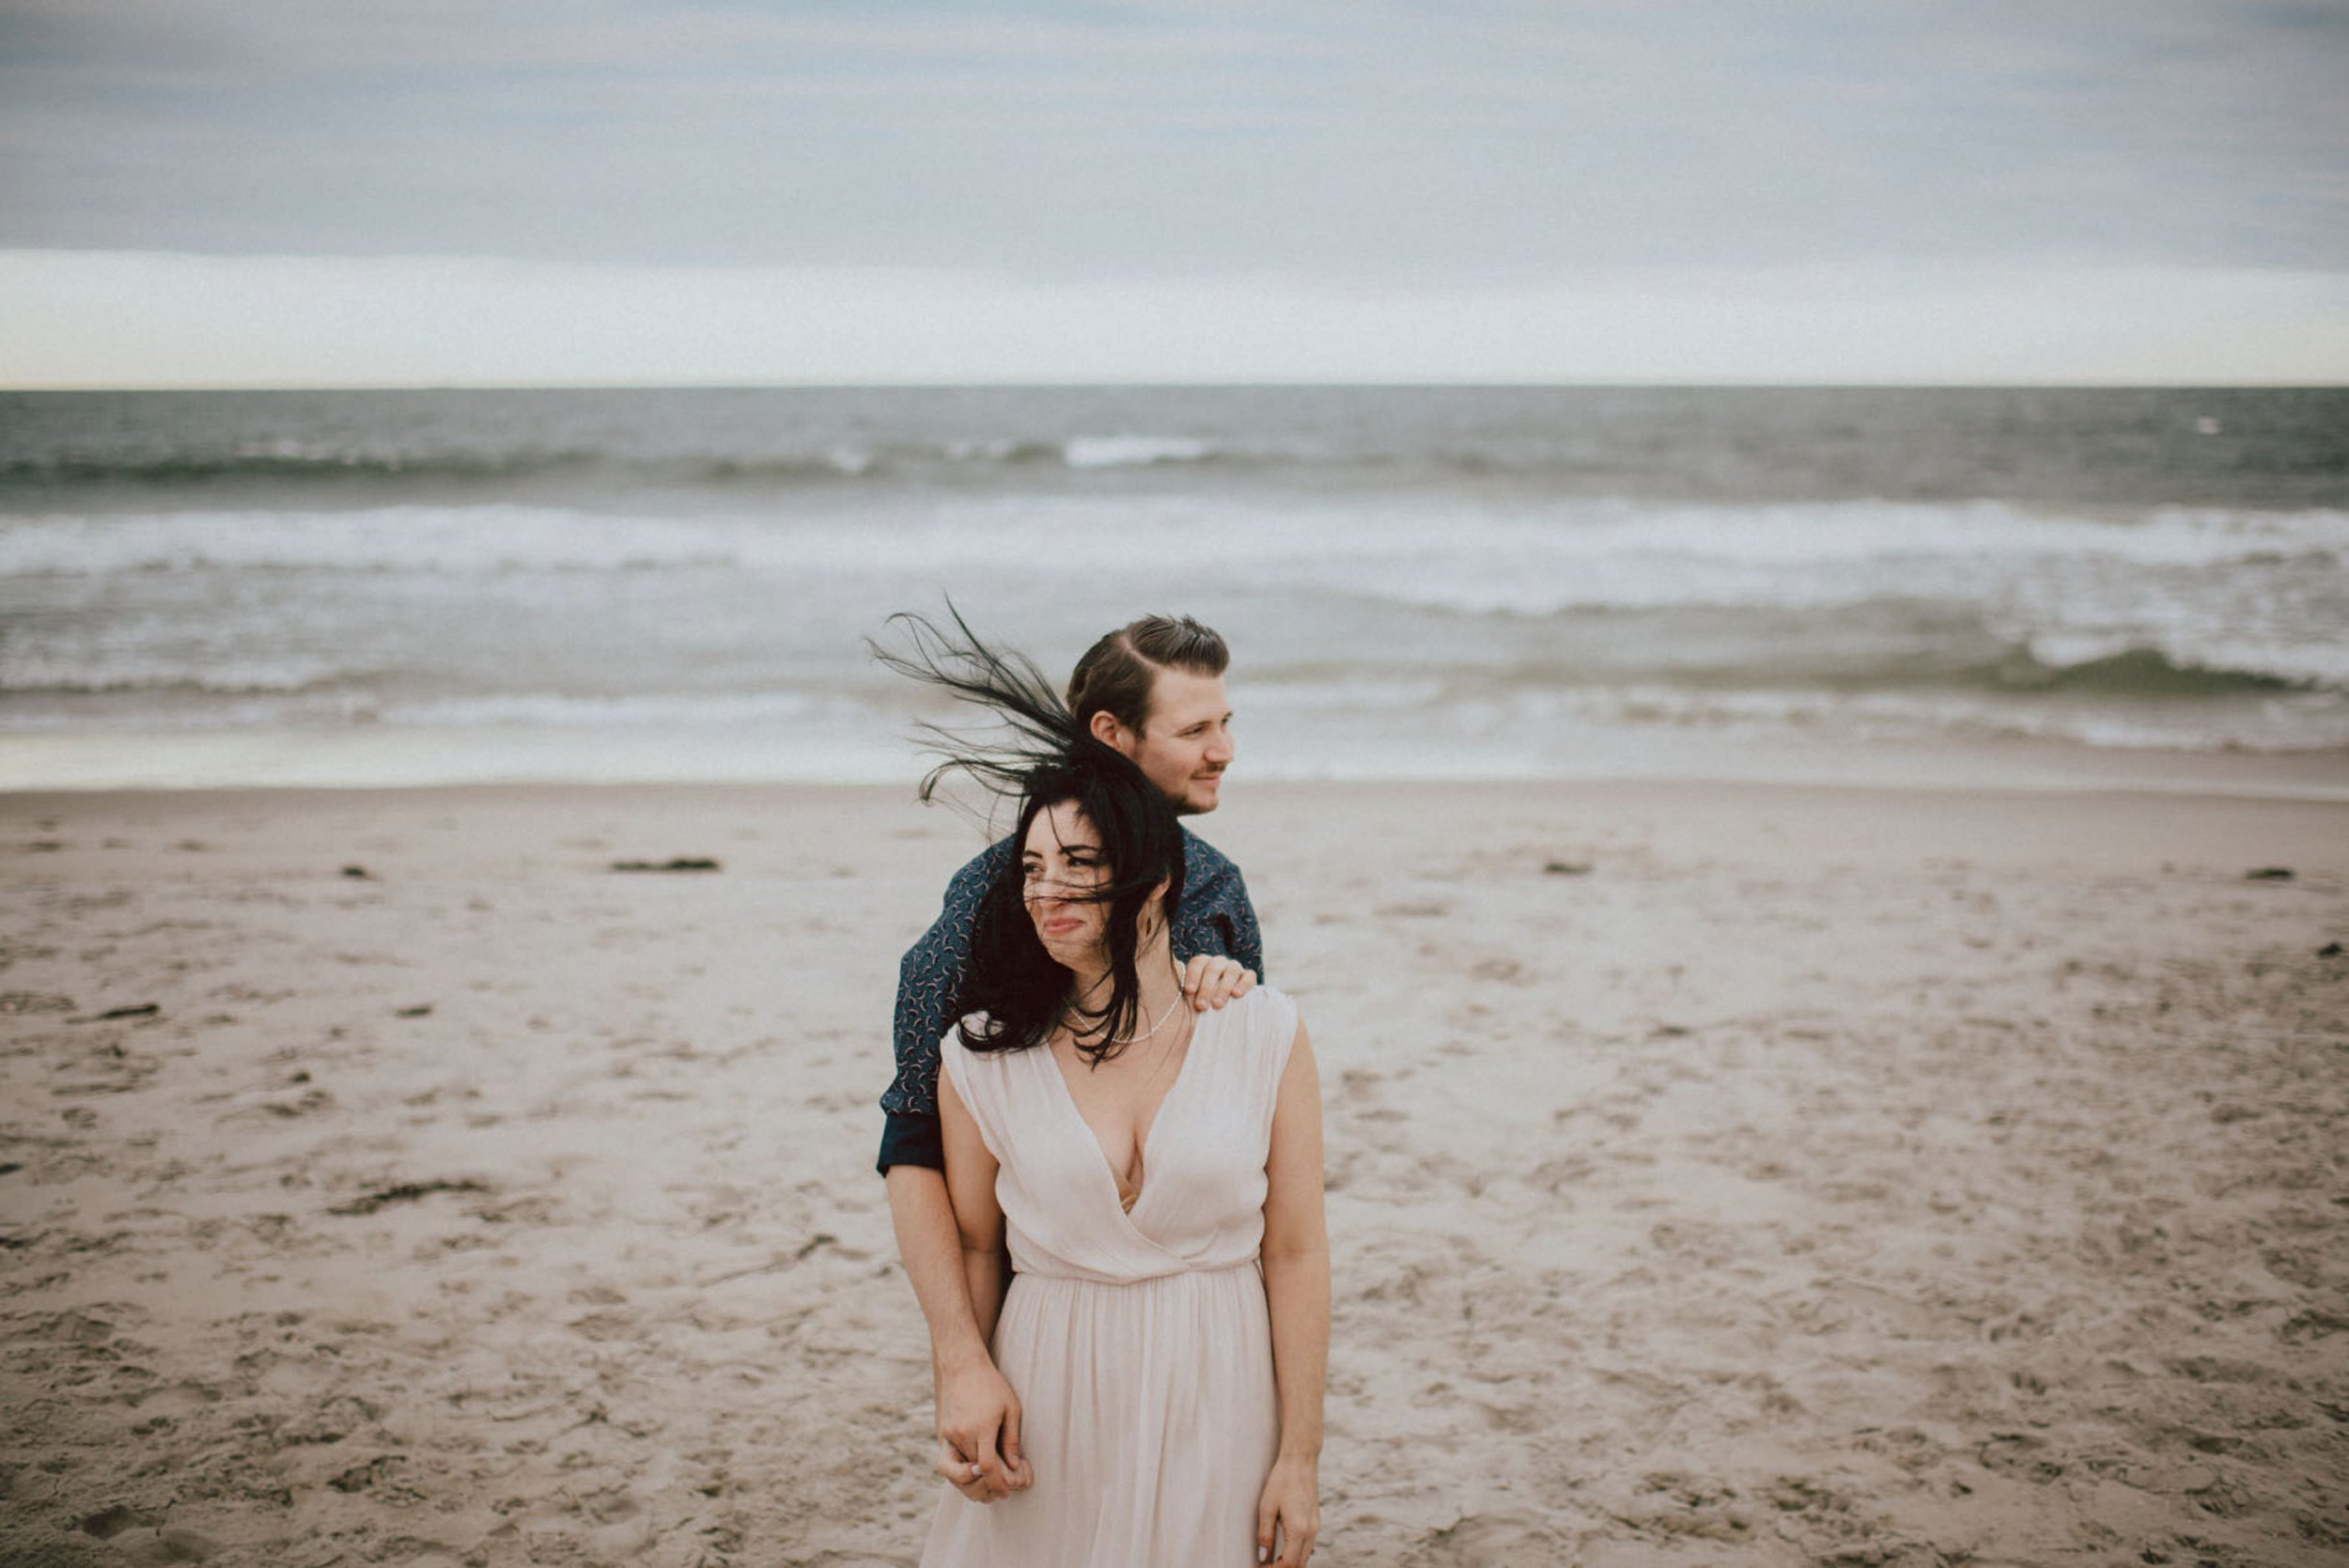 Long-beach-island-engagement-session-25.jpg